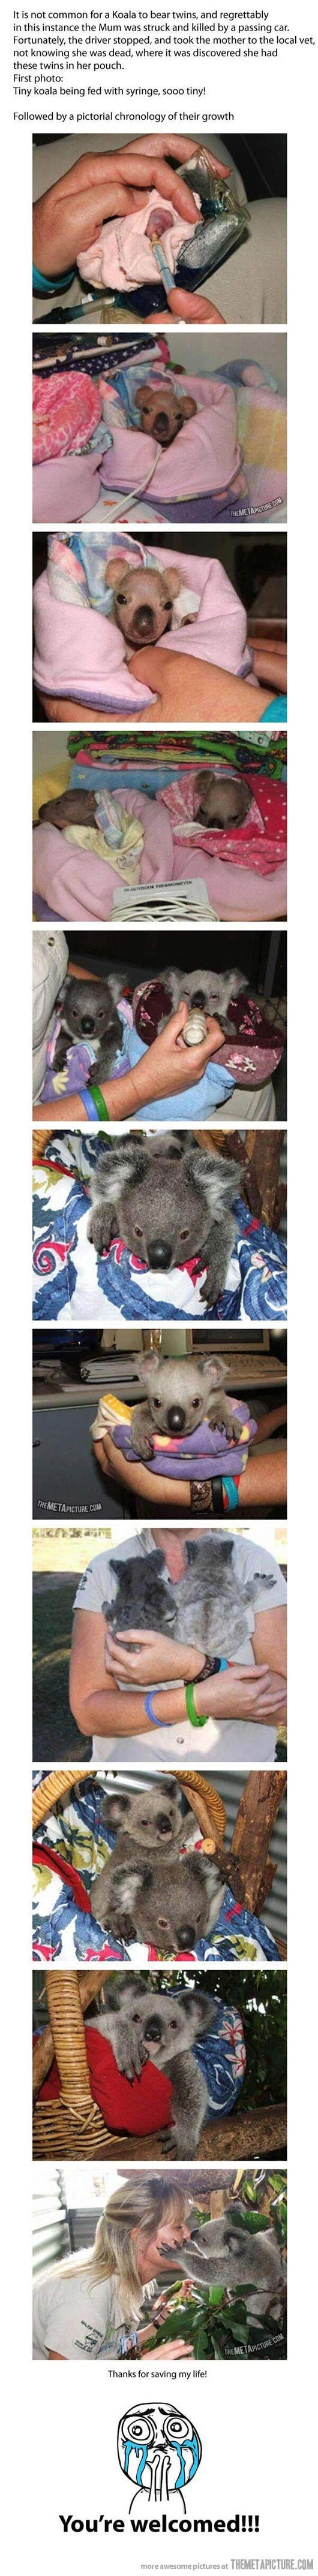 The koalas rescue...